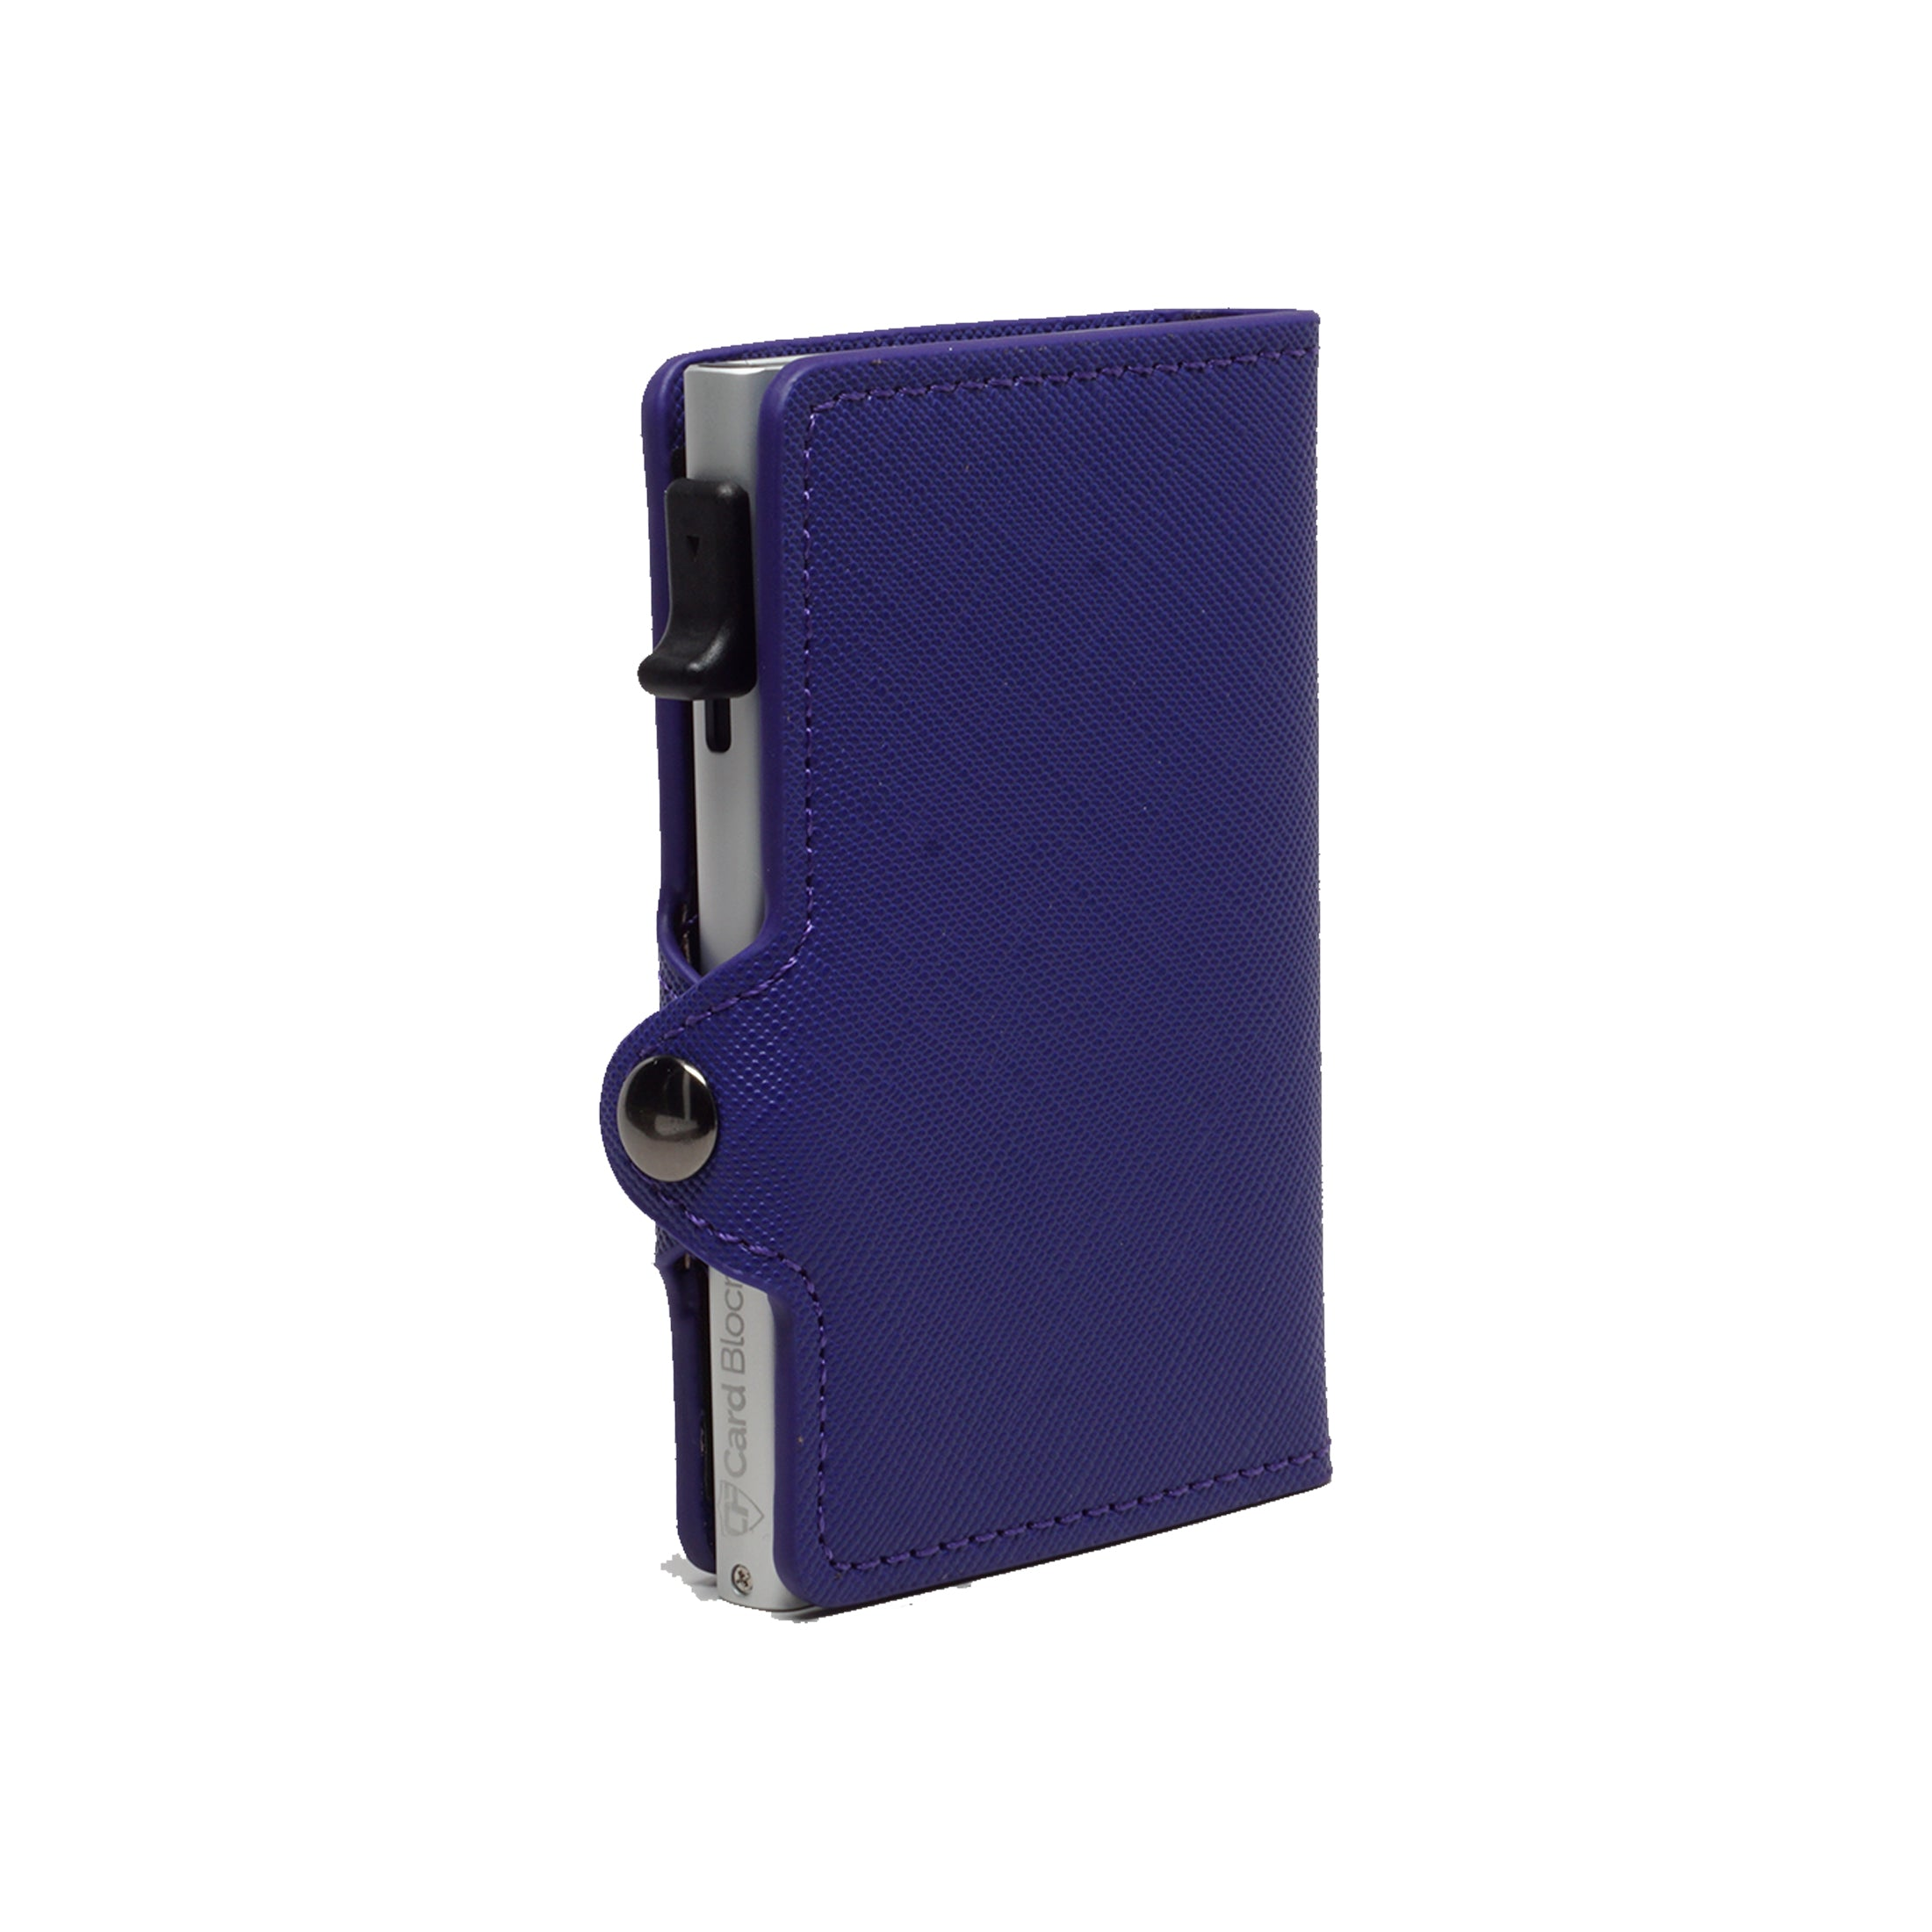 Card Blocr Credit Card Wallet Saffiano Purple PU Leather and Silver Metal Minimalist Wallet